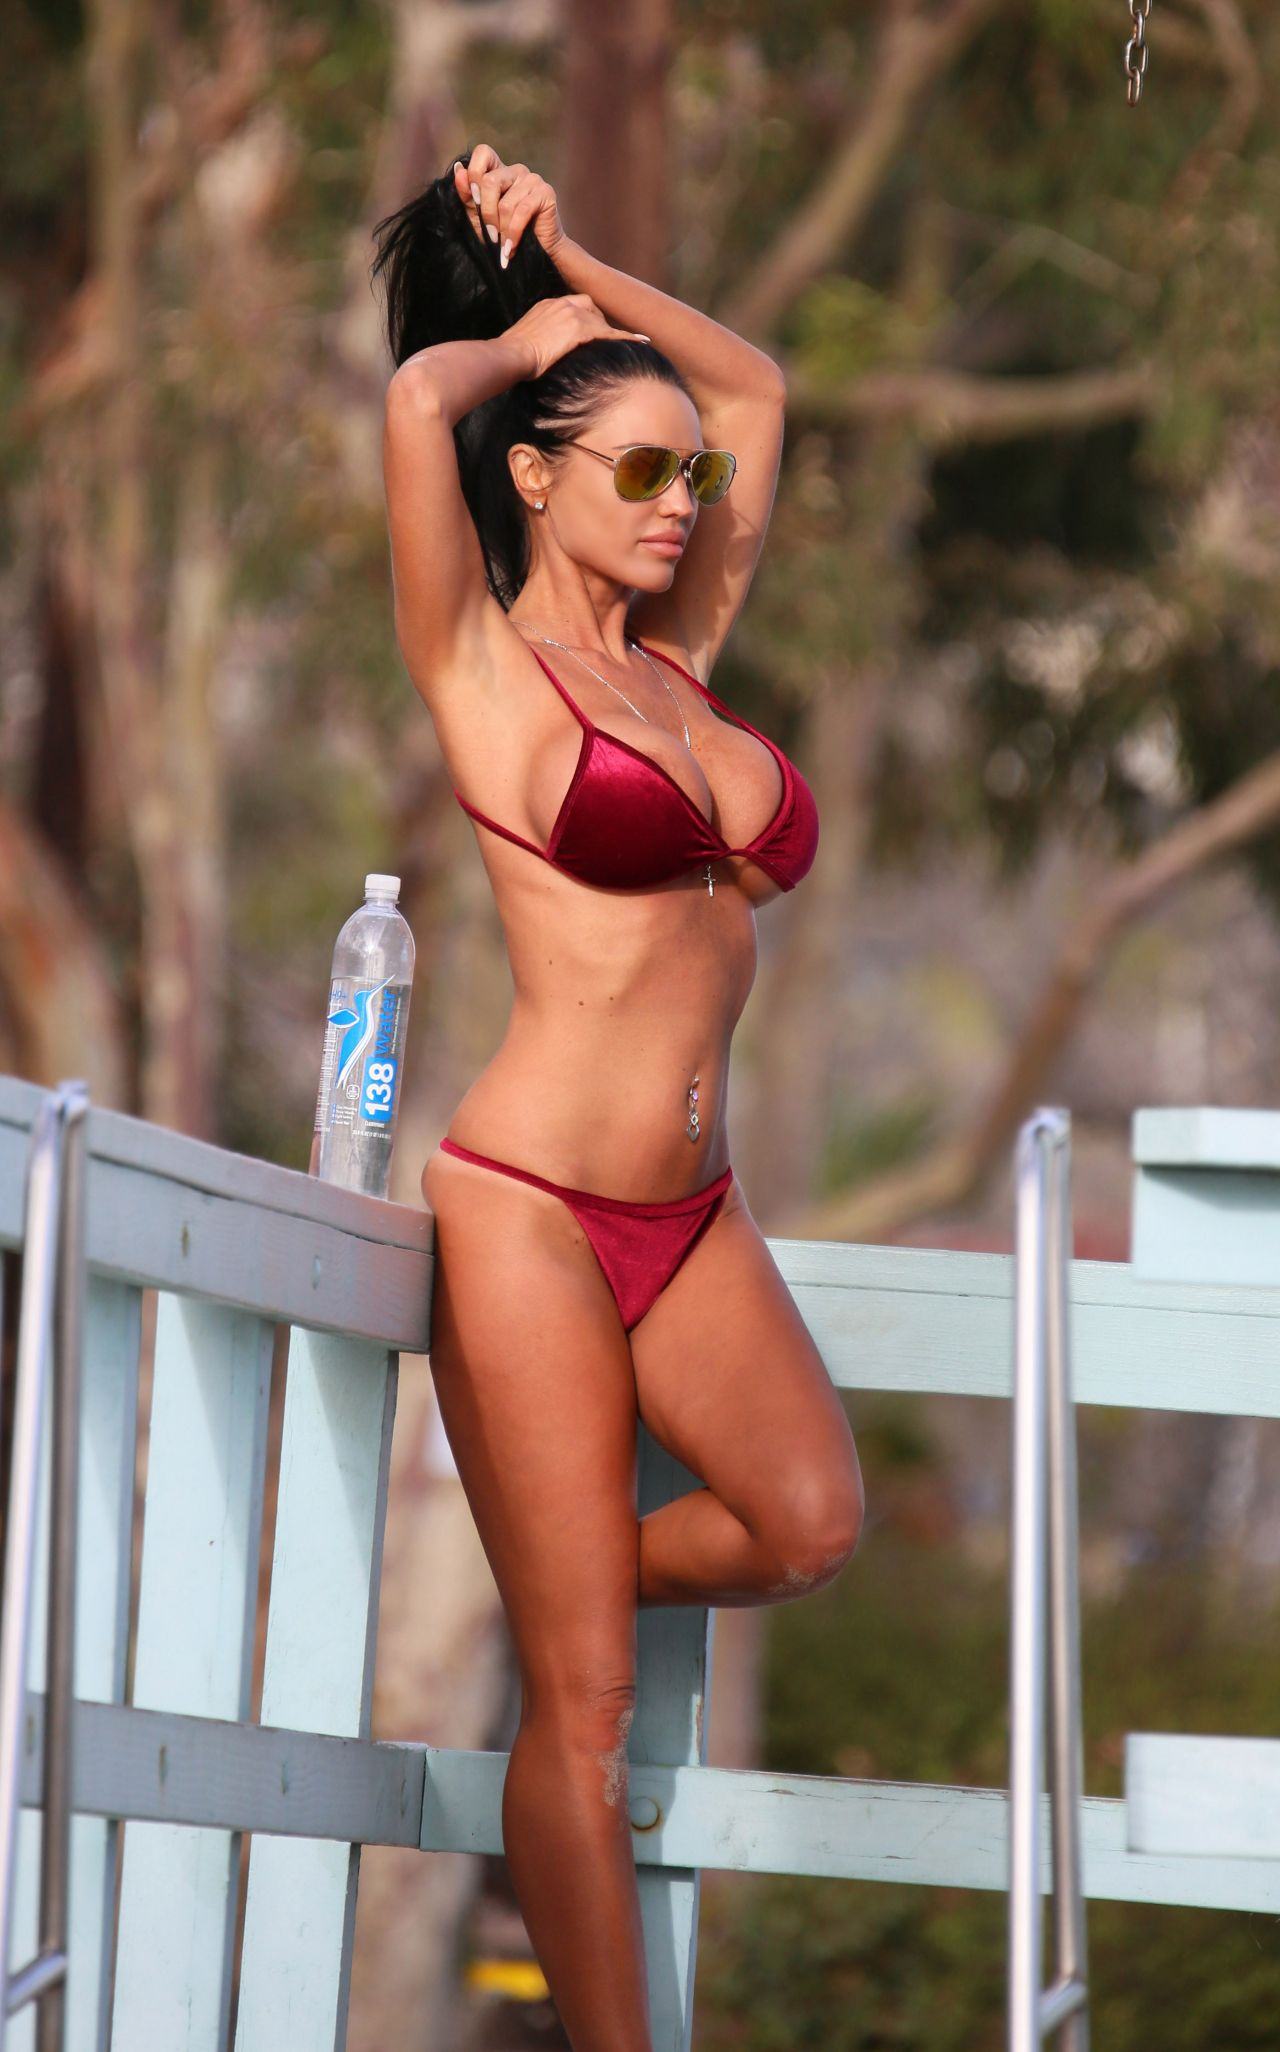 charlie-riina-bikini-photoshoot-for-138-water-in-malibu-04-04-2018-11.jpg